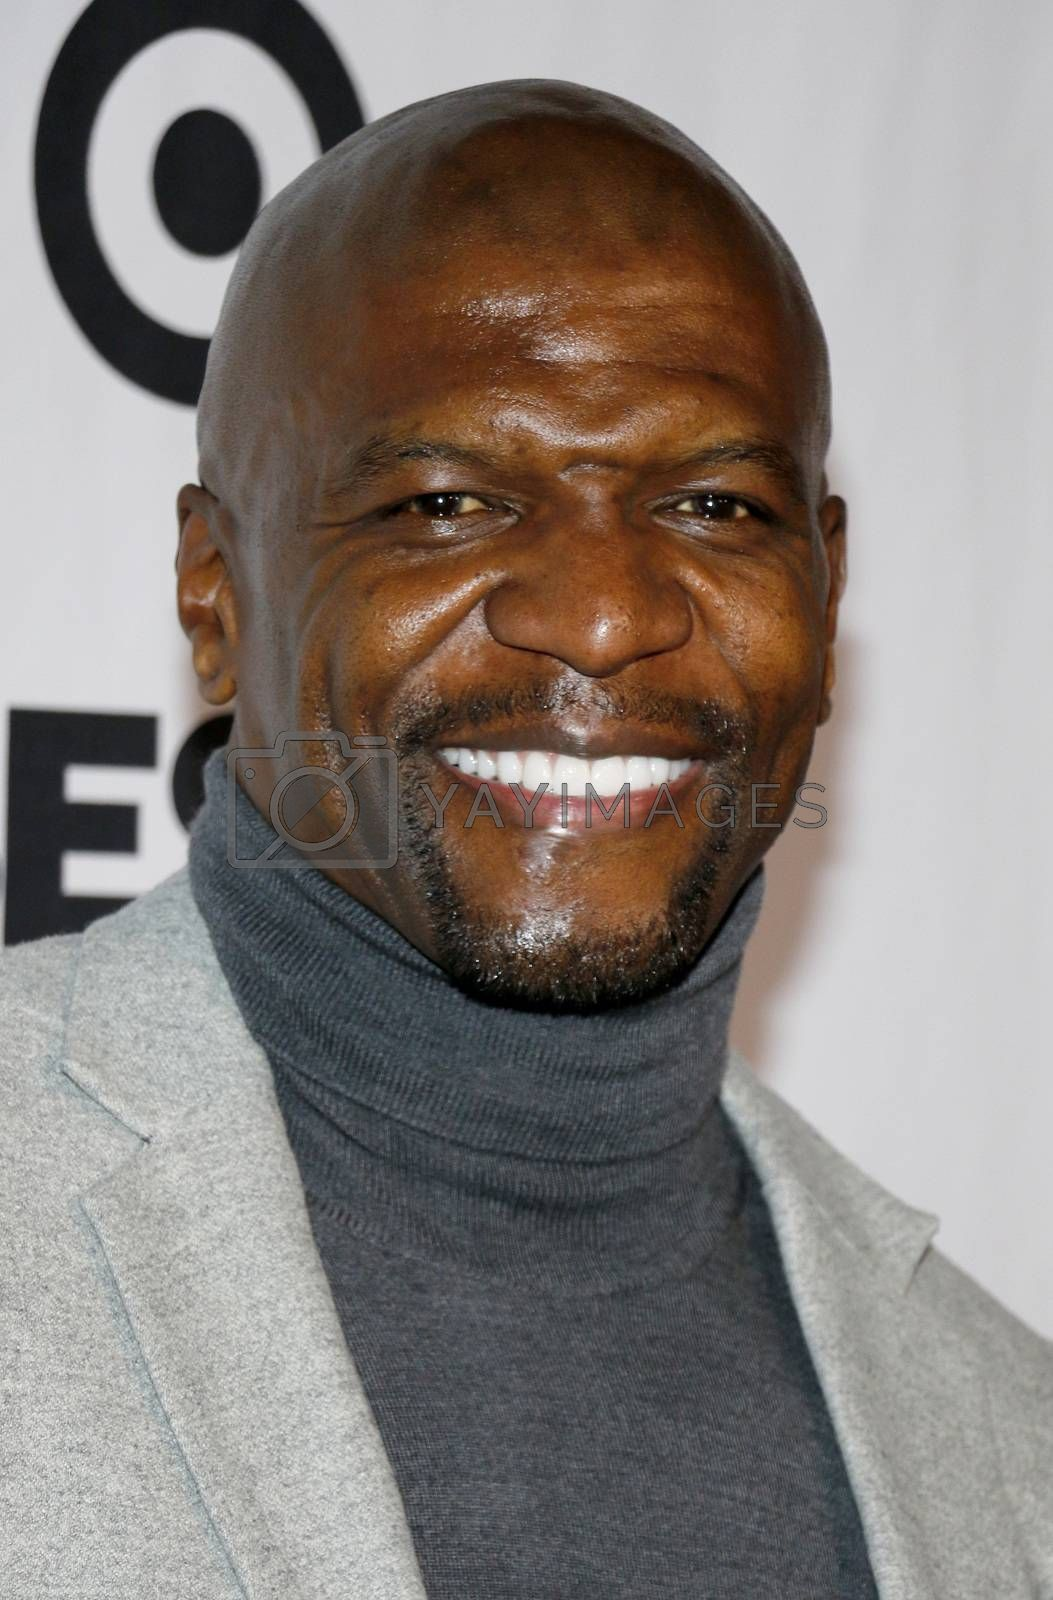 Terry Crews at the Eva Longoria Foundation Dinner Gala held at the Four Seasons Hotel in Beverly Hills, USA on November 8, 2018.